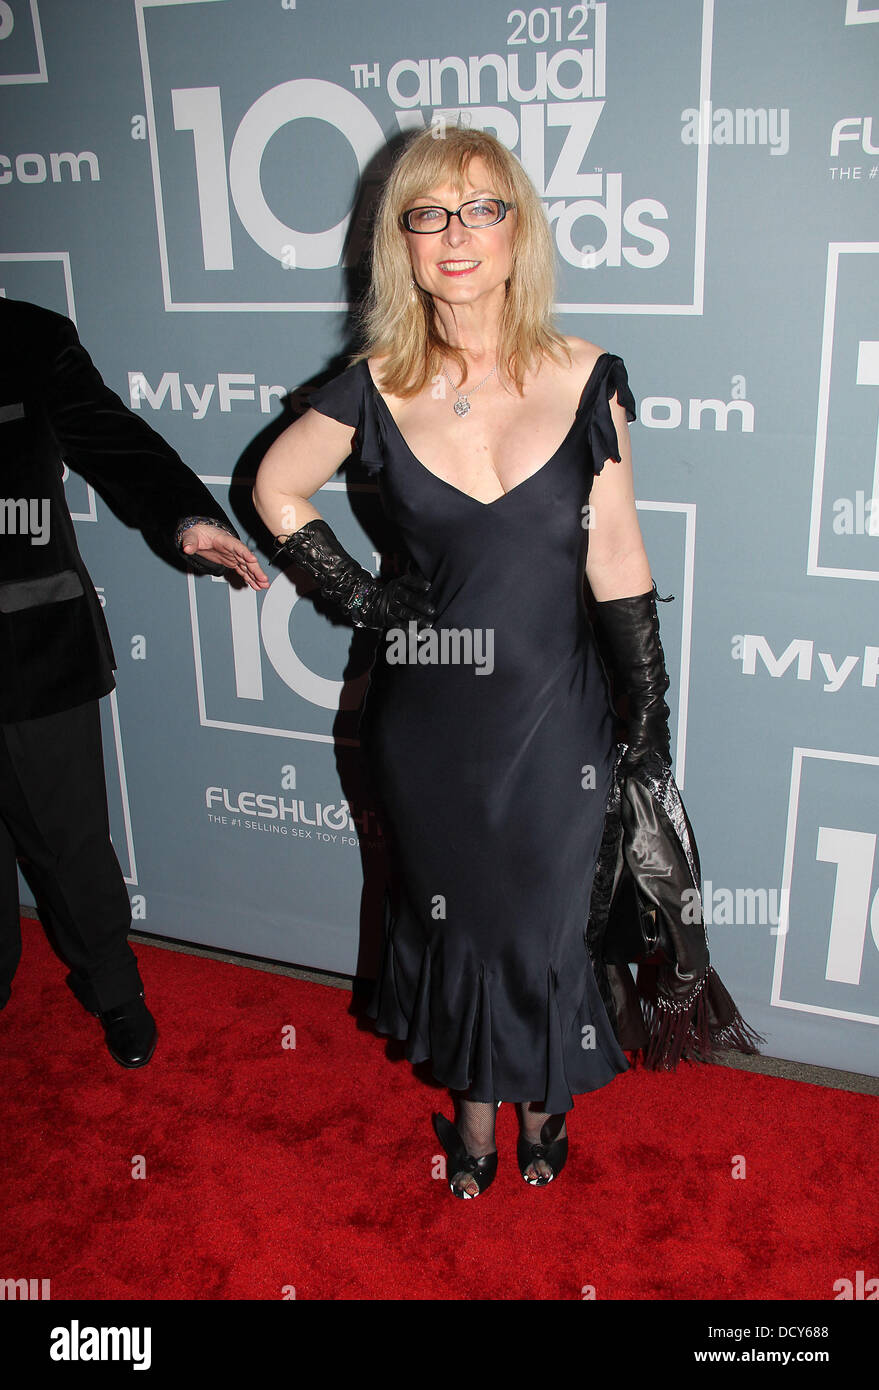 Photos Nina Hartley naked (96 photo), Topless, Bikini, Selfie, cameltoe 2006